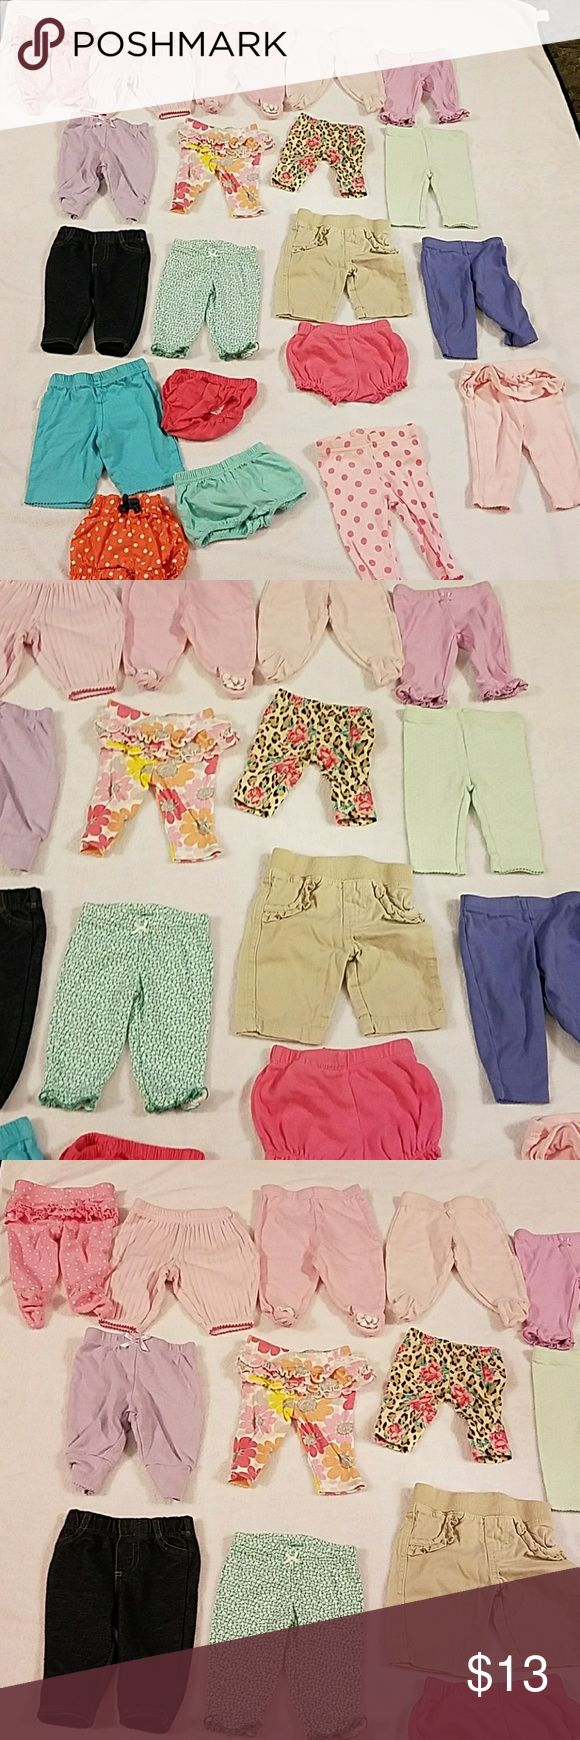 🎀NB Baby girl bottoms 20 Pieces. Newborn baby girl bottoms. From pants, shorts etc. Bottoms